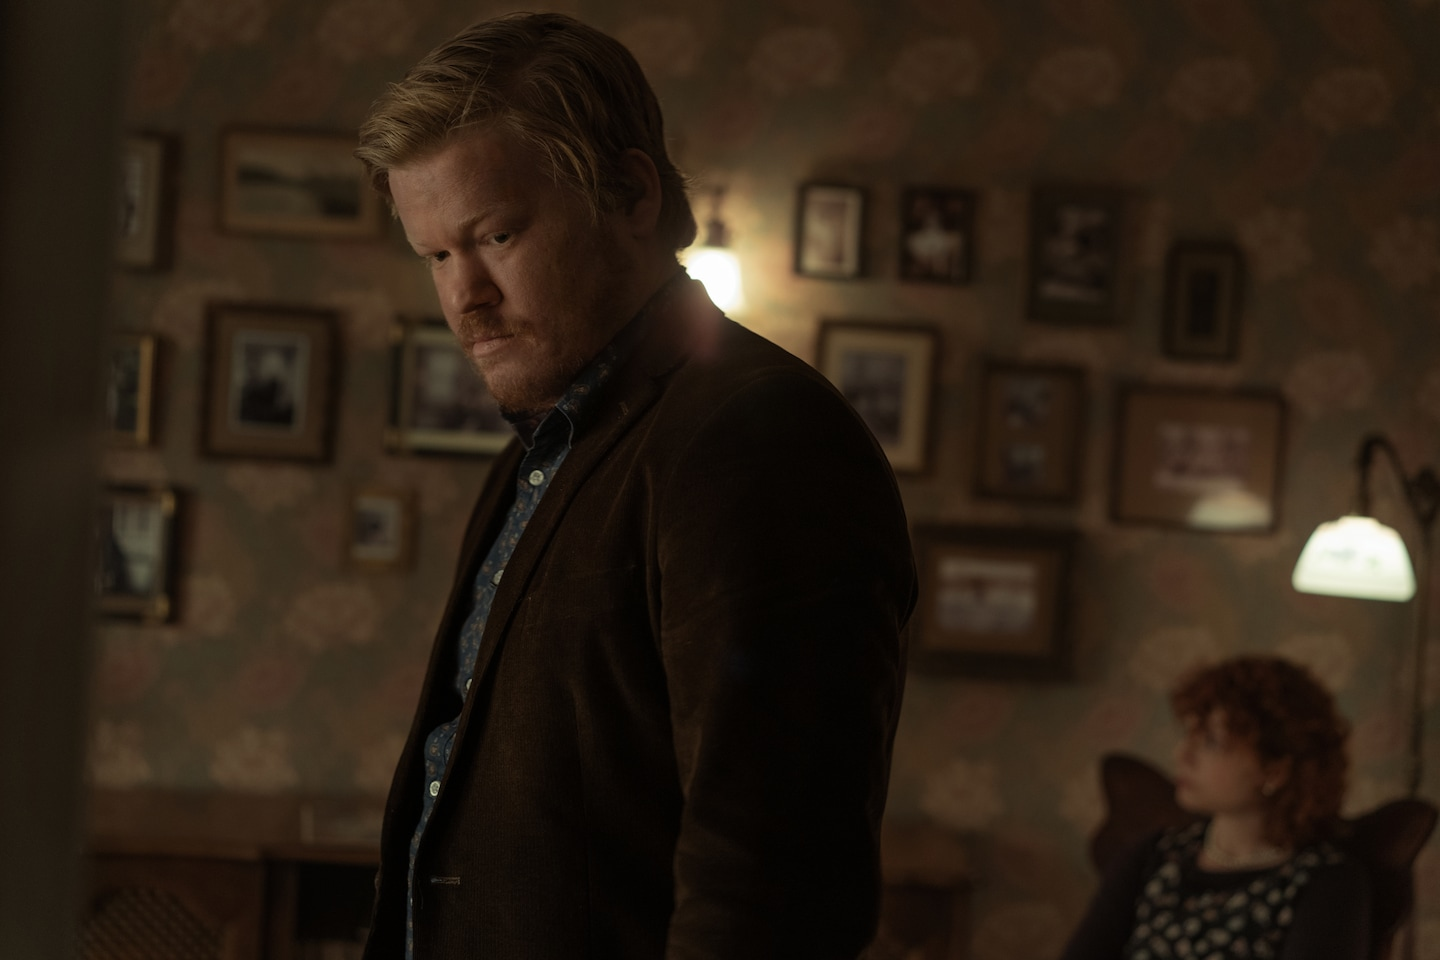 The endless intrigue of 'I'm Thinking of Ending Things' actor Jesse Plemons